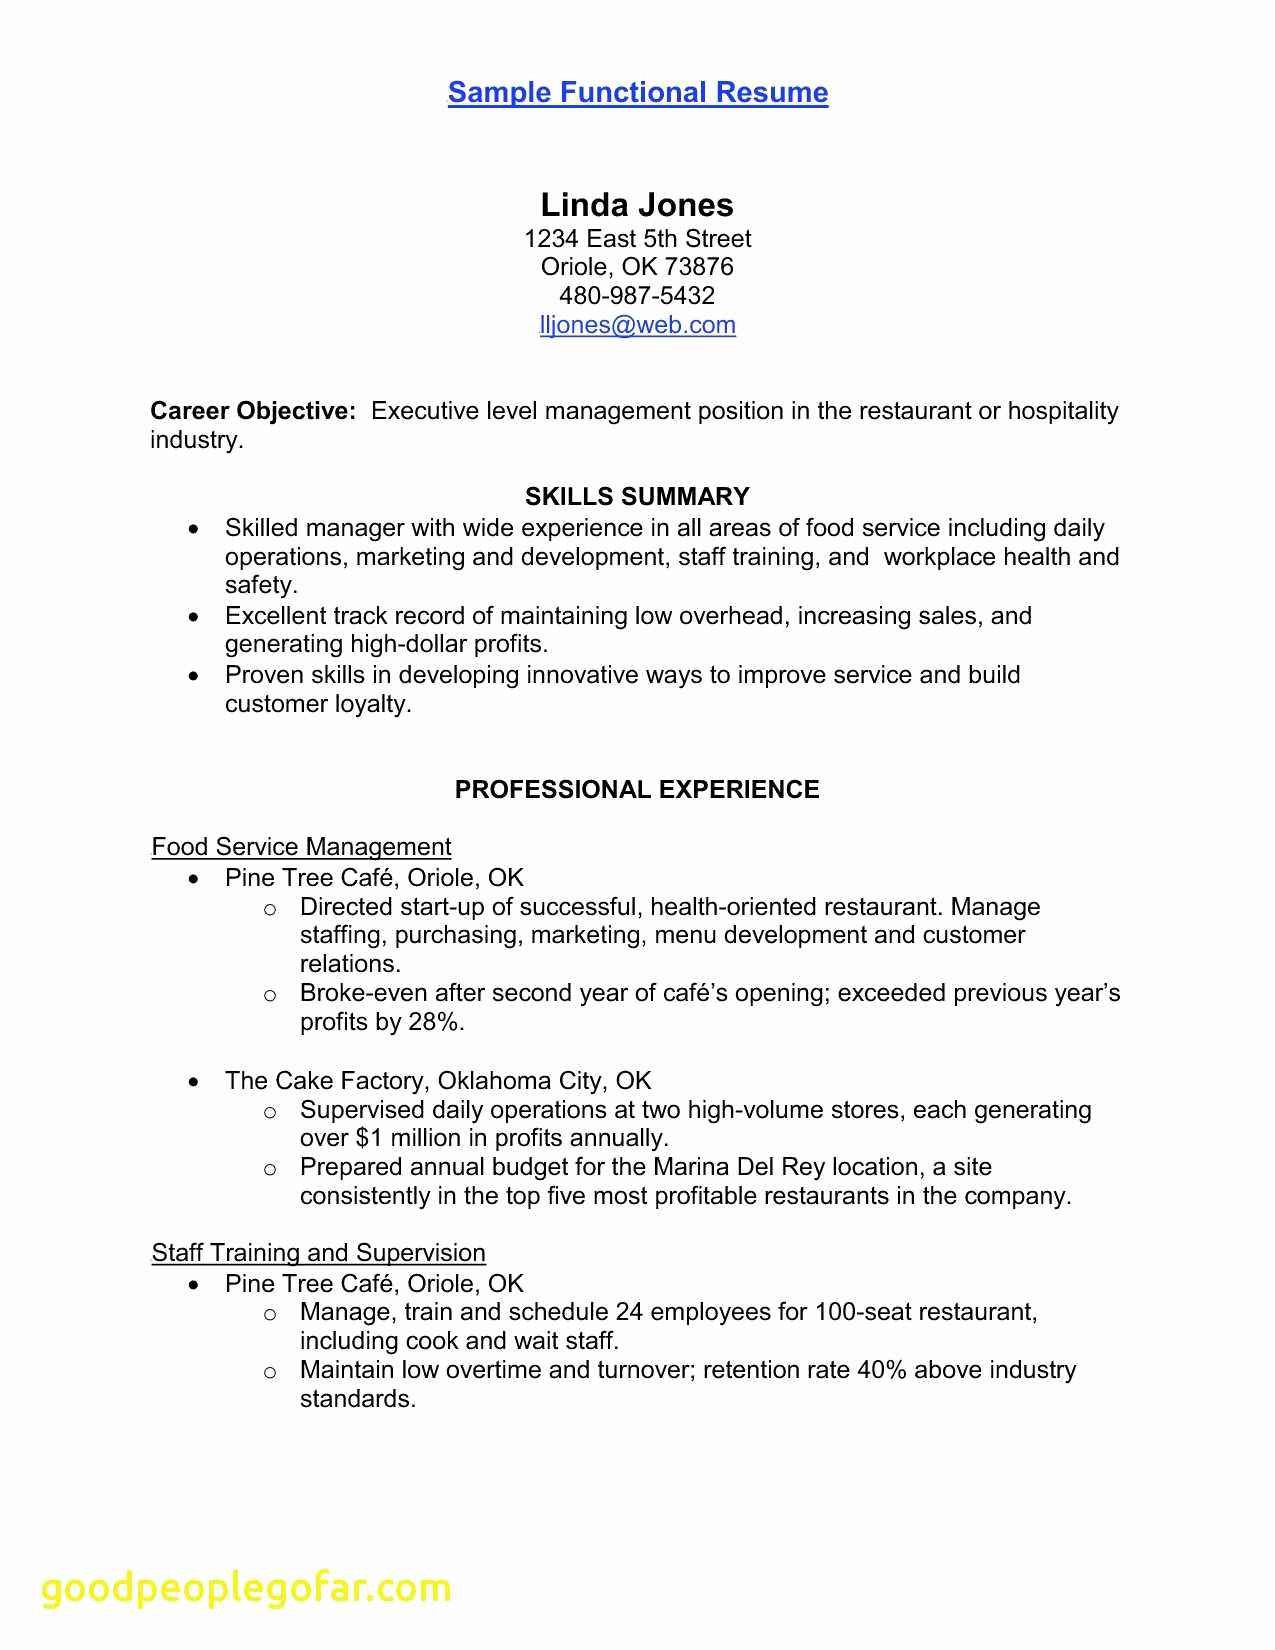 Food Manager Resume - Warehouse Manager Resume Lovely Food Service Manager Resume